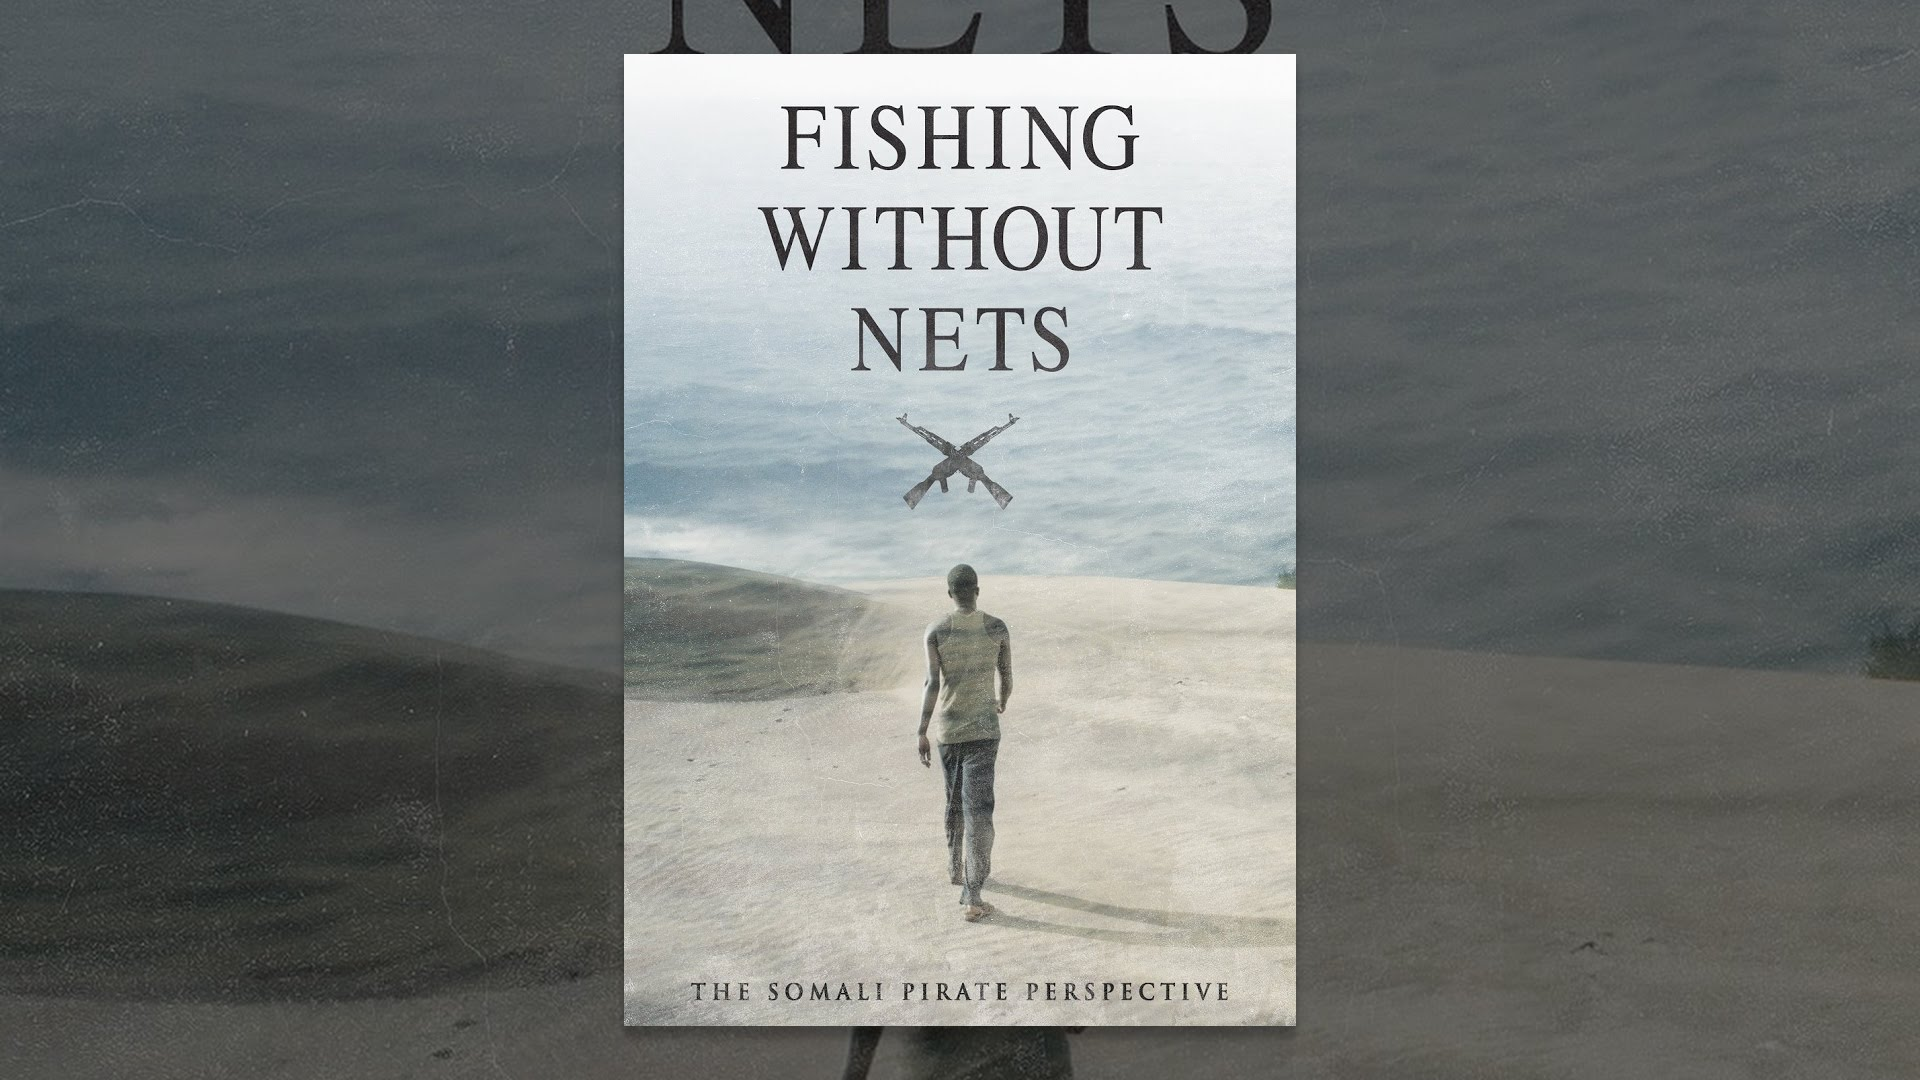 Fishing without nets youtube for Fishing without nets